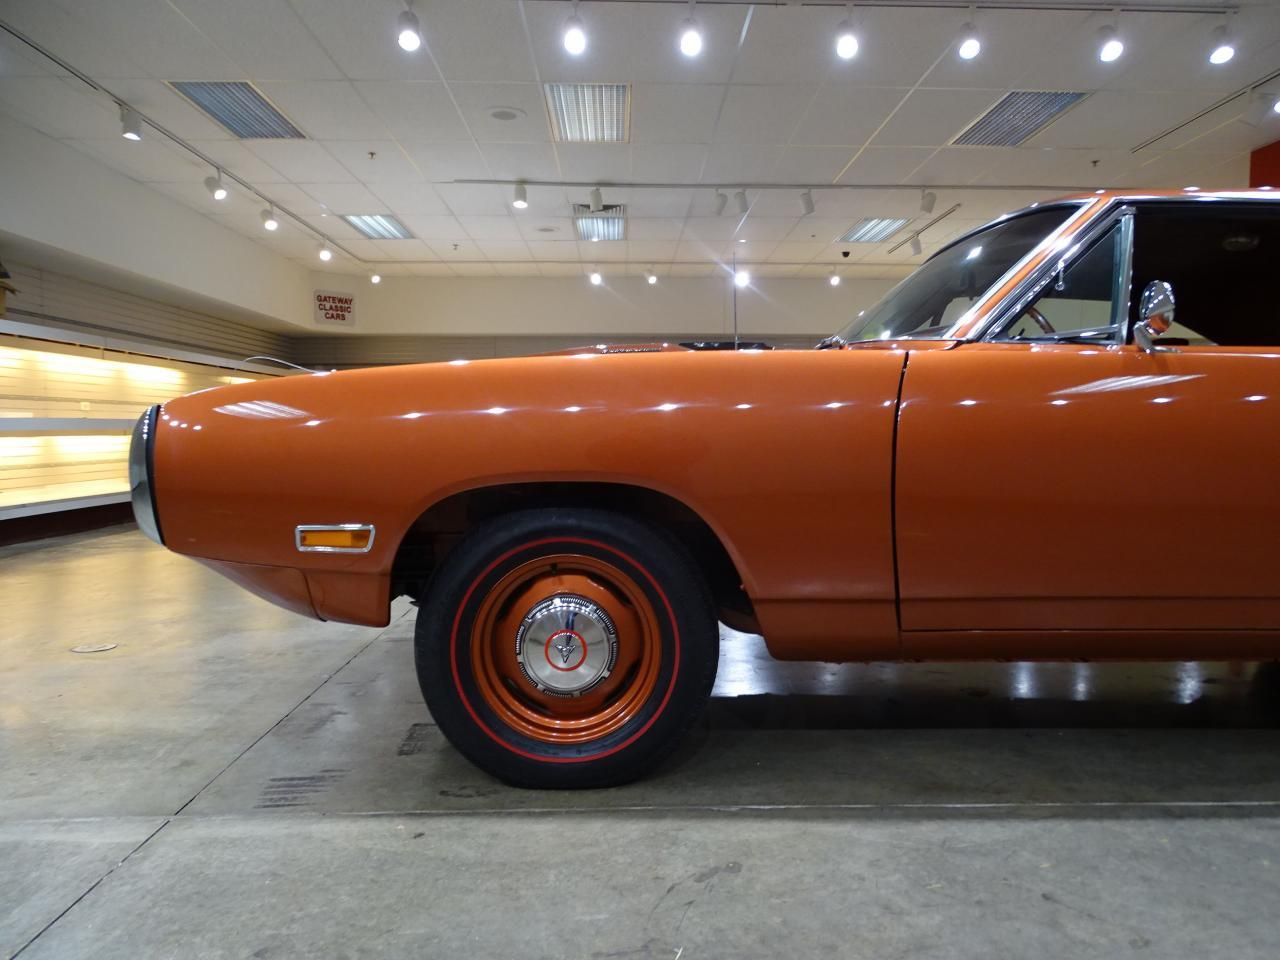 Large Picture of Classic 1970 Dodge Super Bee located in O'Fallon Illinois - $61,000.00 Offered by Gateway Classic Cars - St. Louis - QB4W